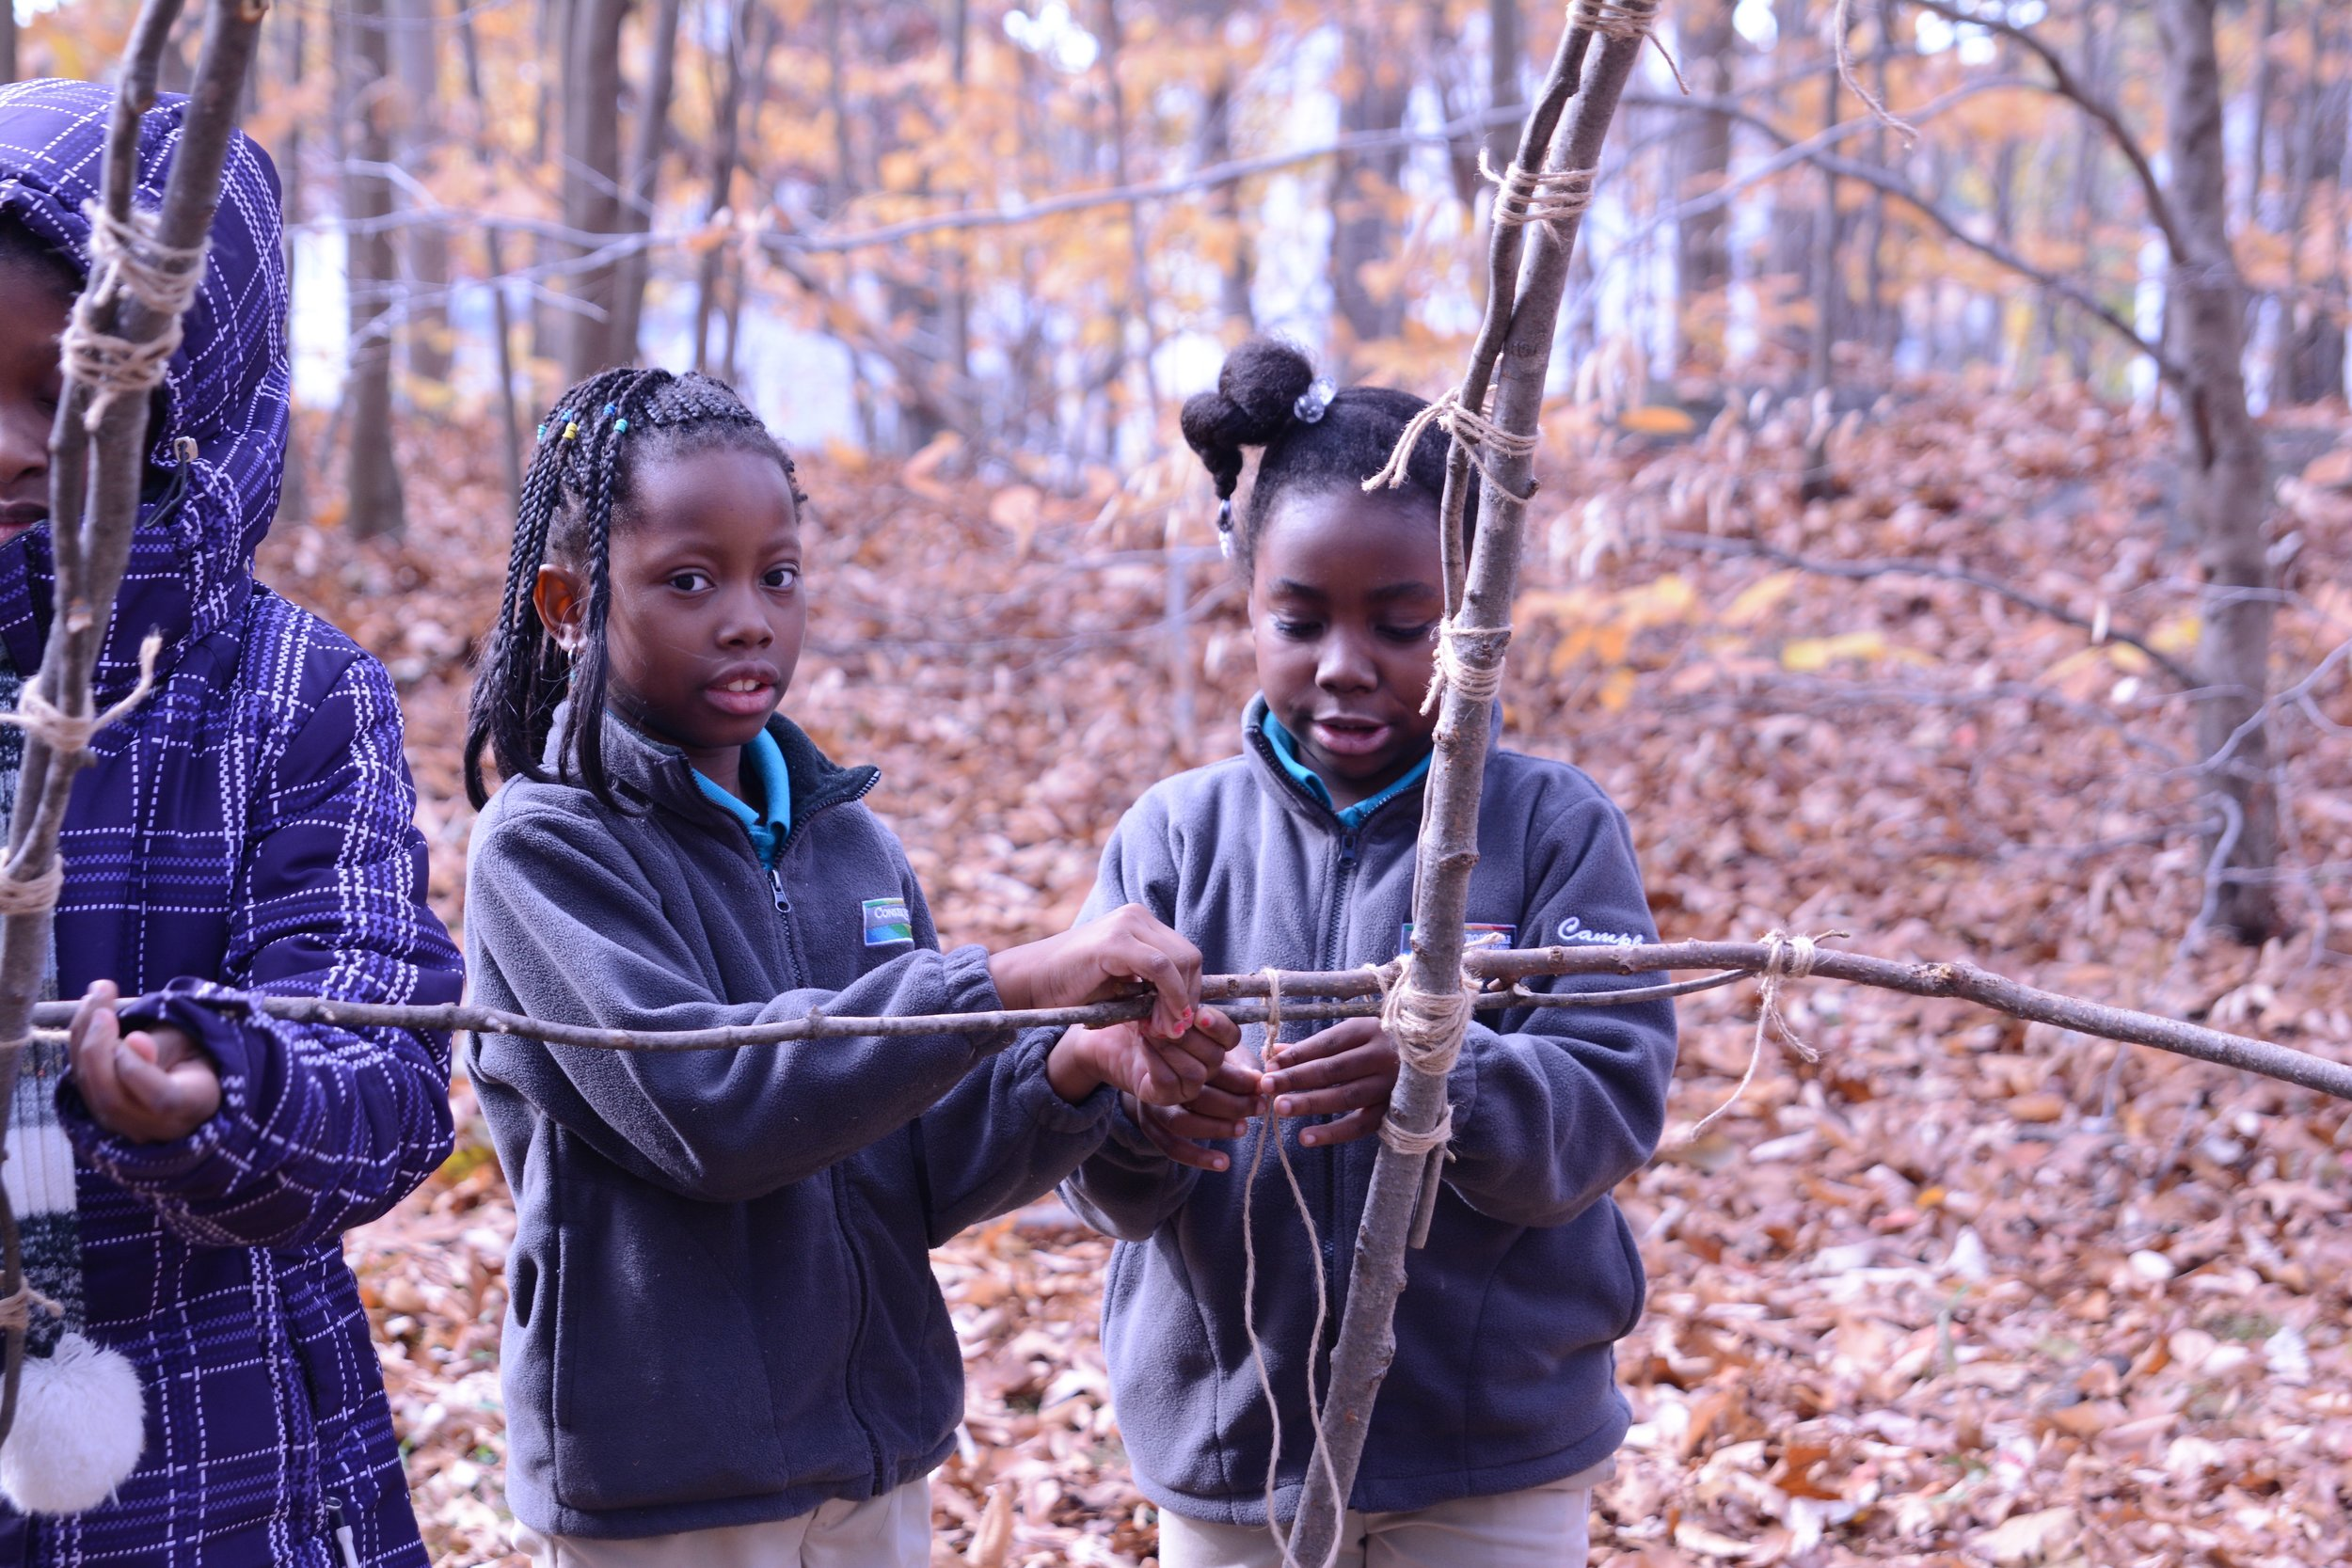 4th graders build wetus for an expedition about the Wampanoag Indians.